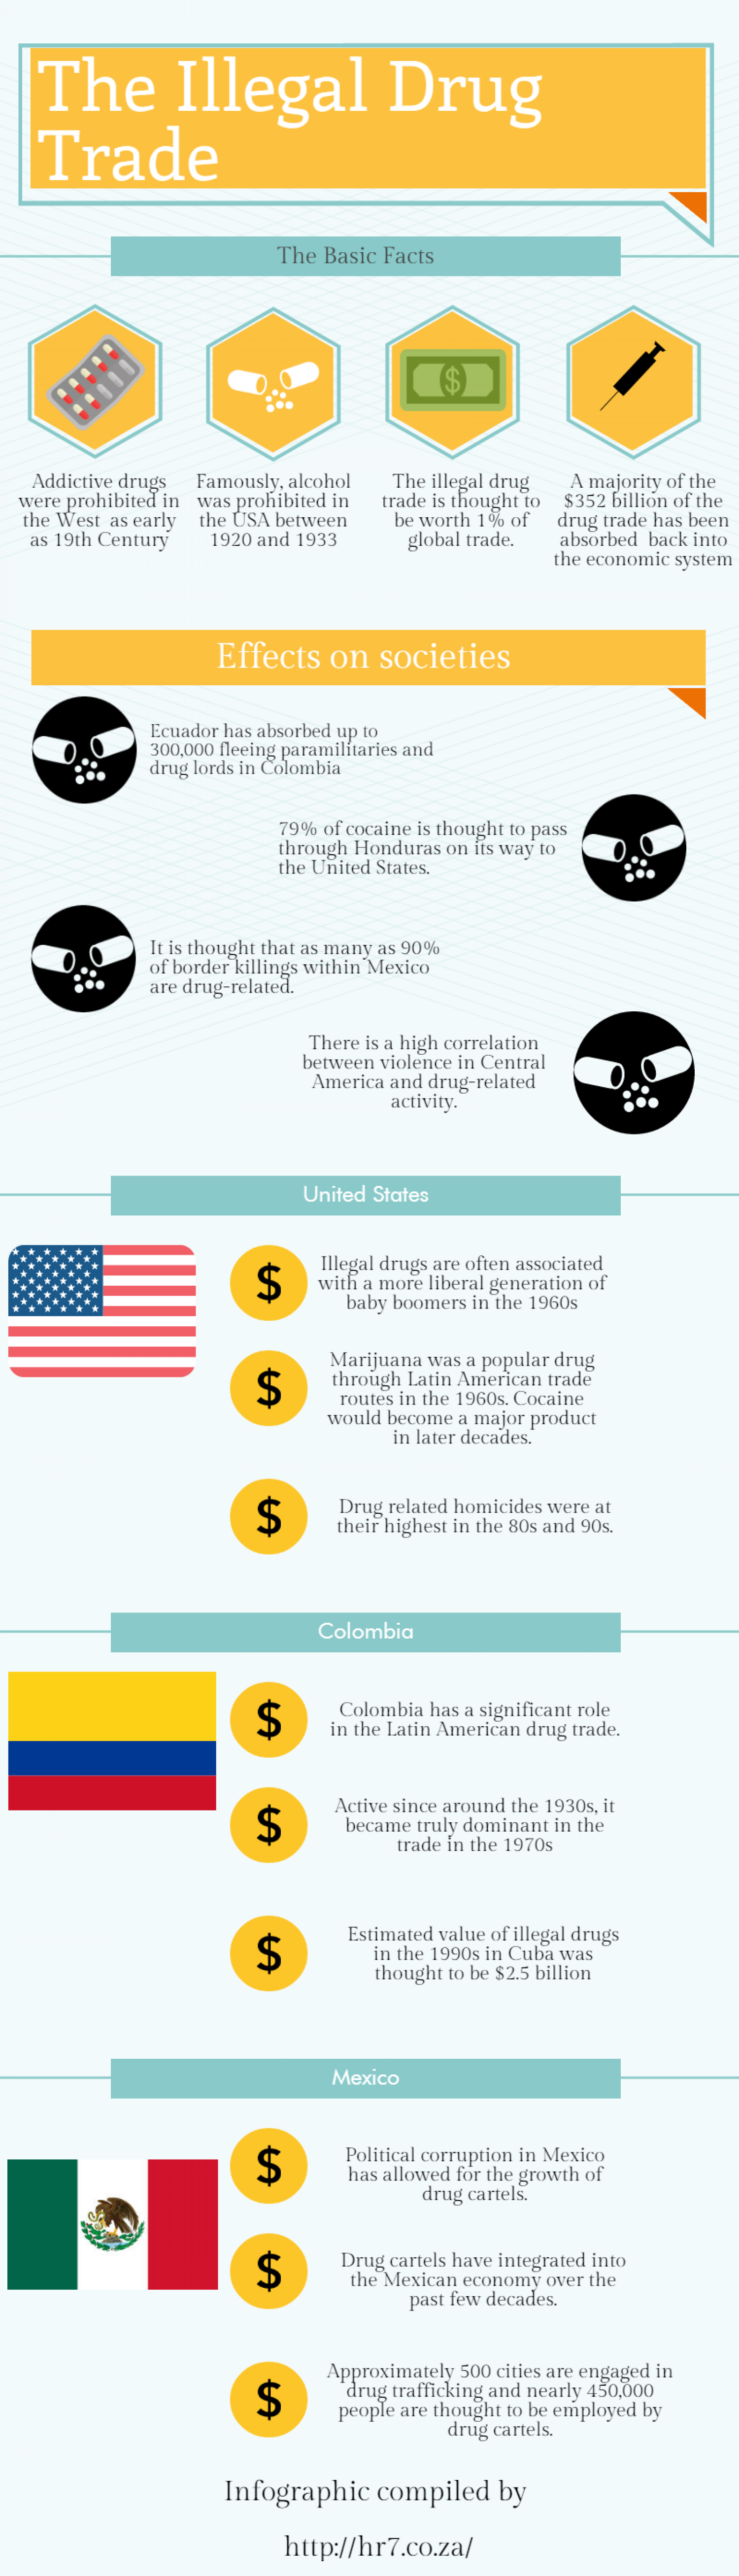 The Illegal Drug Trade Infographic